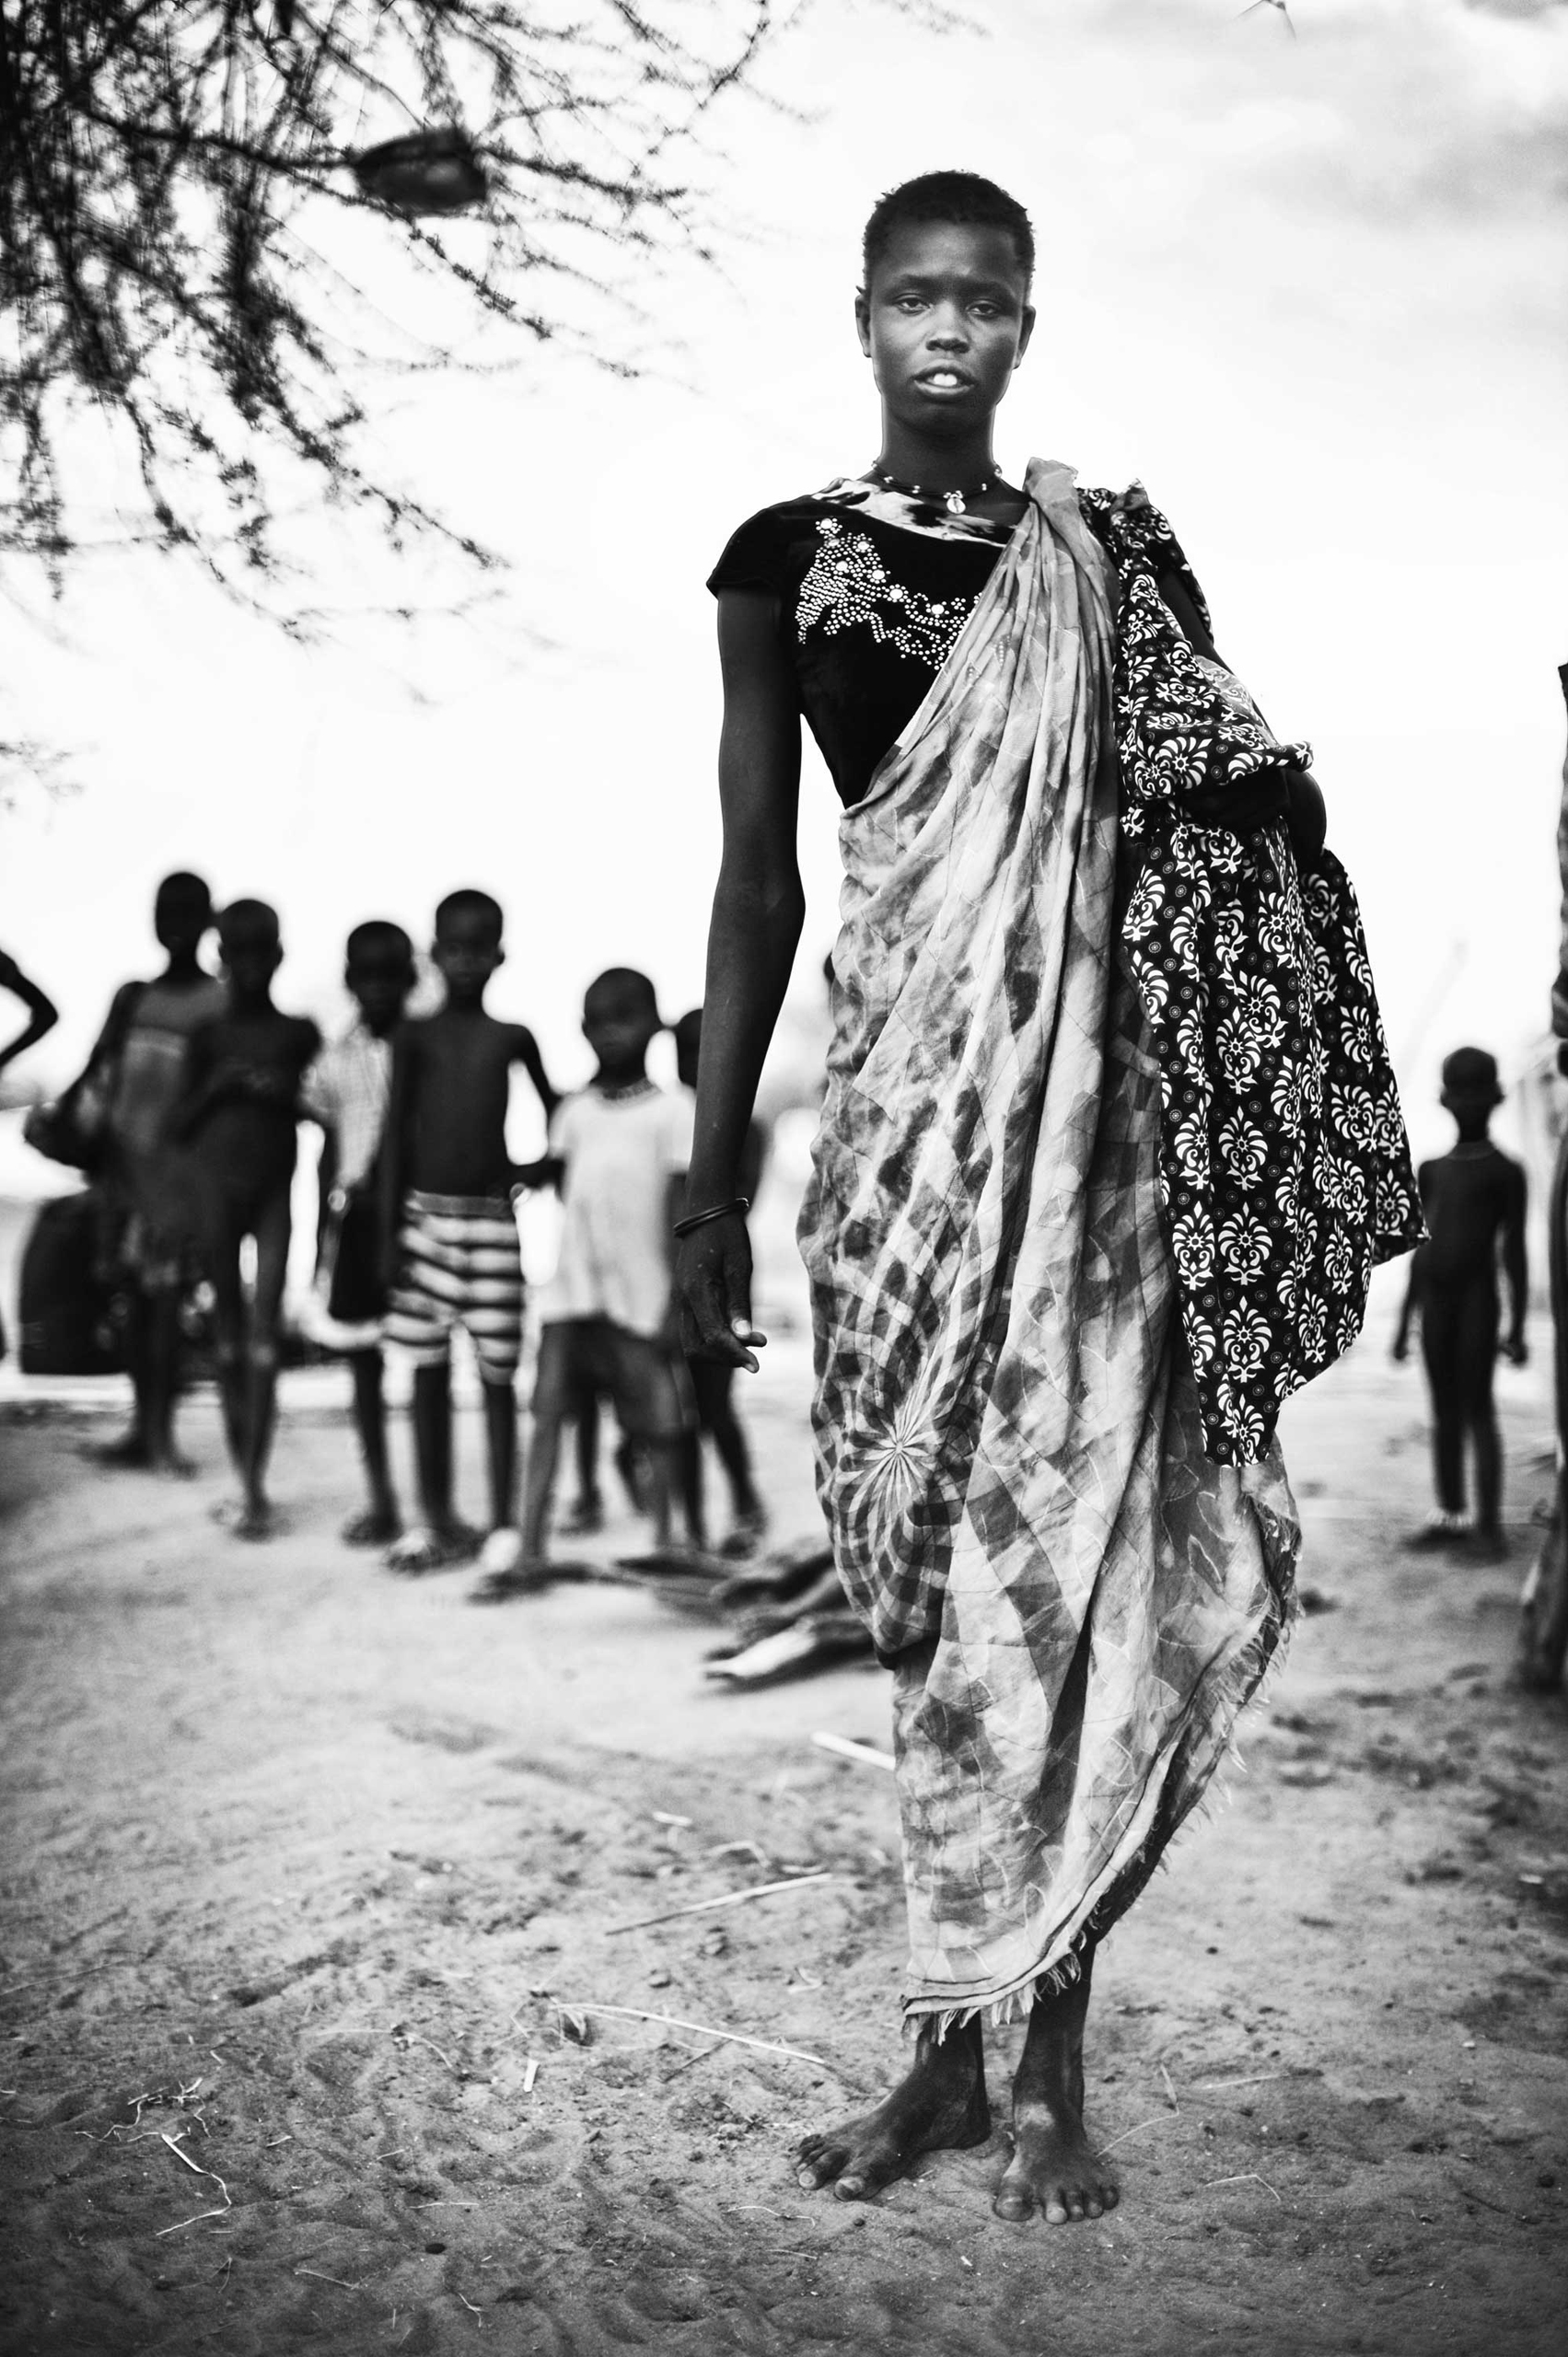 Mingkamann refugee camp, Lakes state, South Sudan: Ayen, 28, has five children. She ran away from Bor, Jonglei state, because of the fighting and violence. She does not want to speak about what happened to the rest of her family.